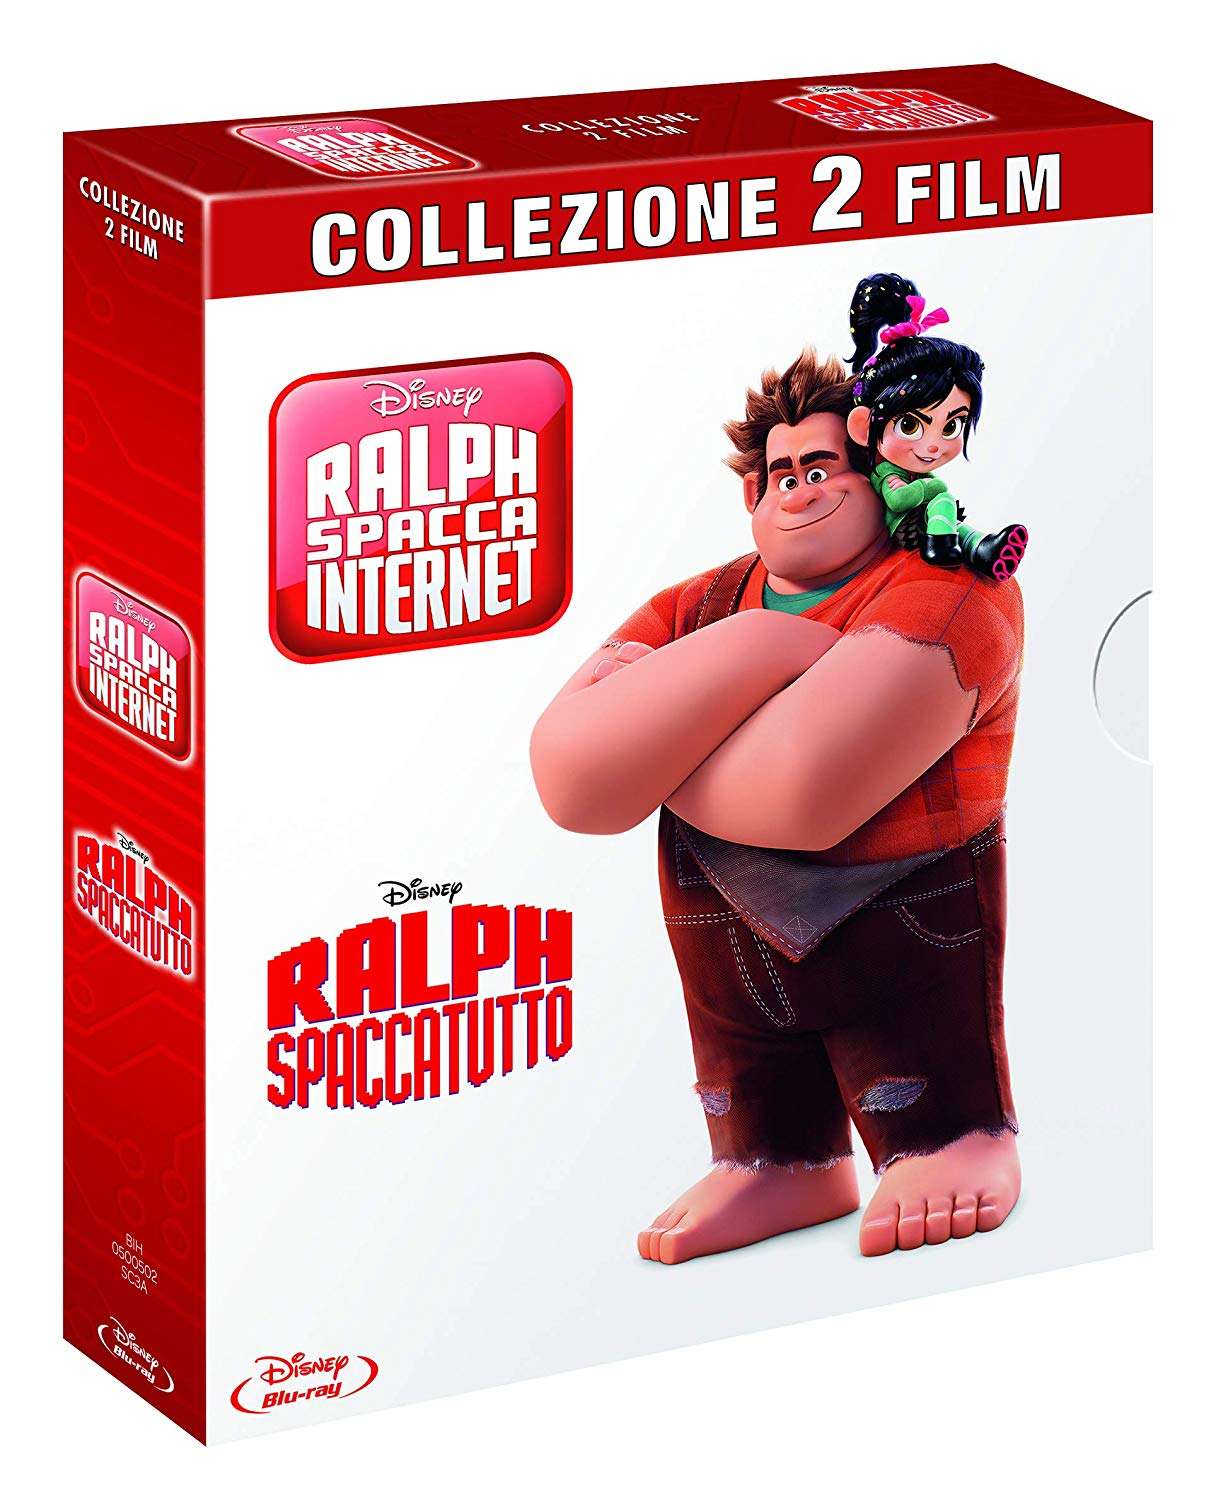 COF.RALPH SPACCATUTTO / RALPH SPACCA INTERNET (2 BLU-RAY)